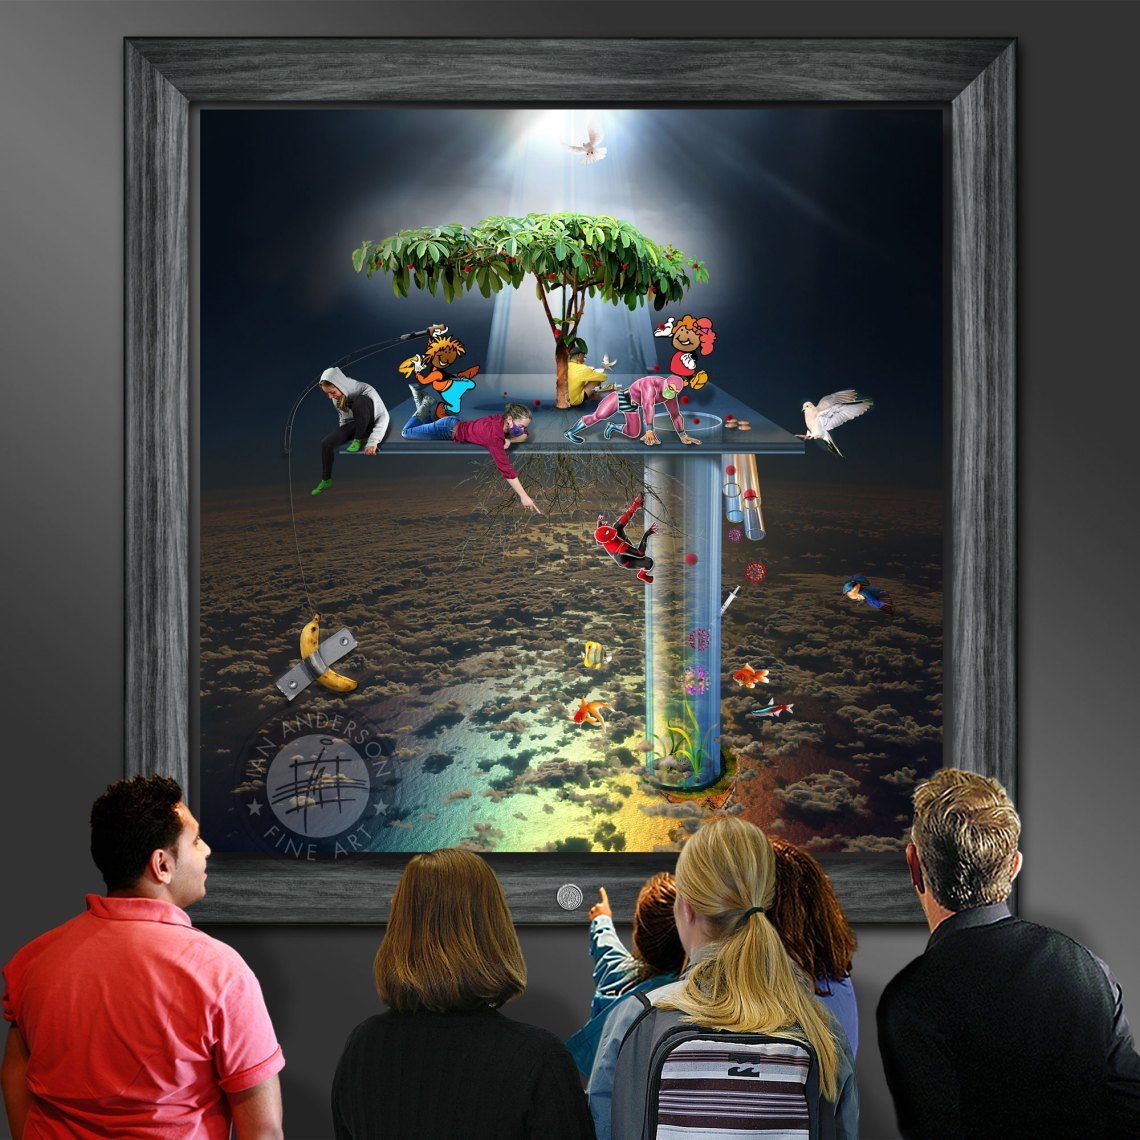 """Comedy caricature banana ducktape From Heaven To Earth oil painting with banana and duck tape """"Comedy"""" associated with cartoon caricatures"""